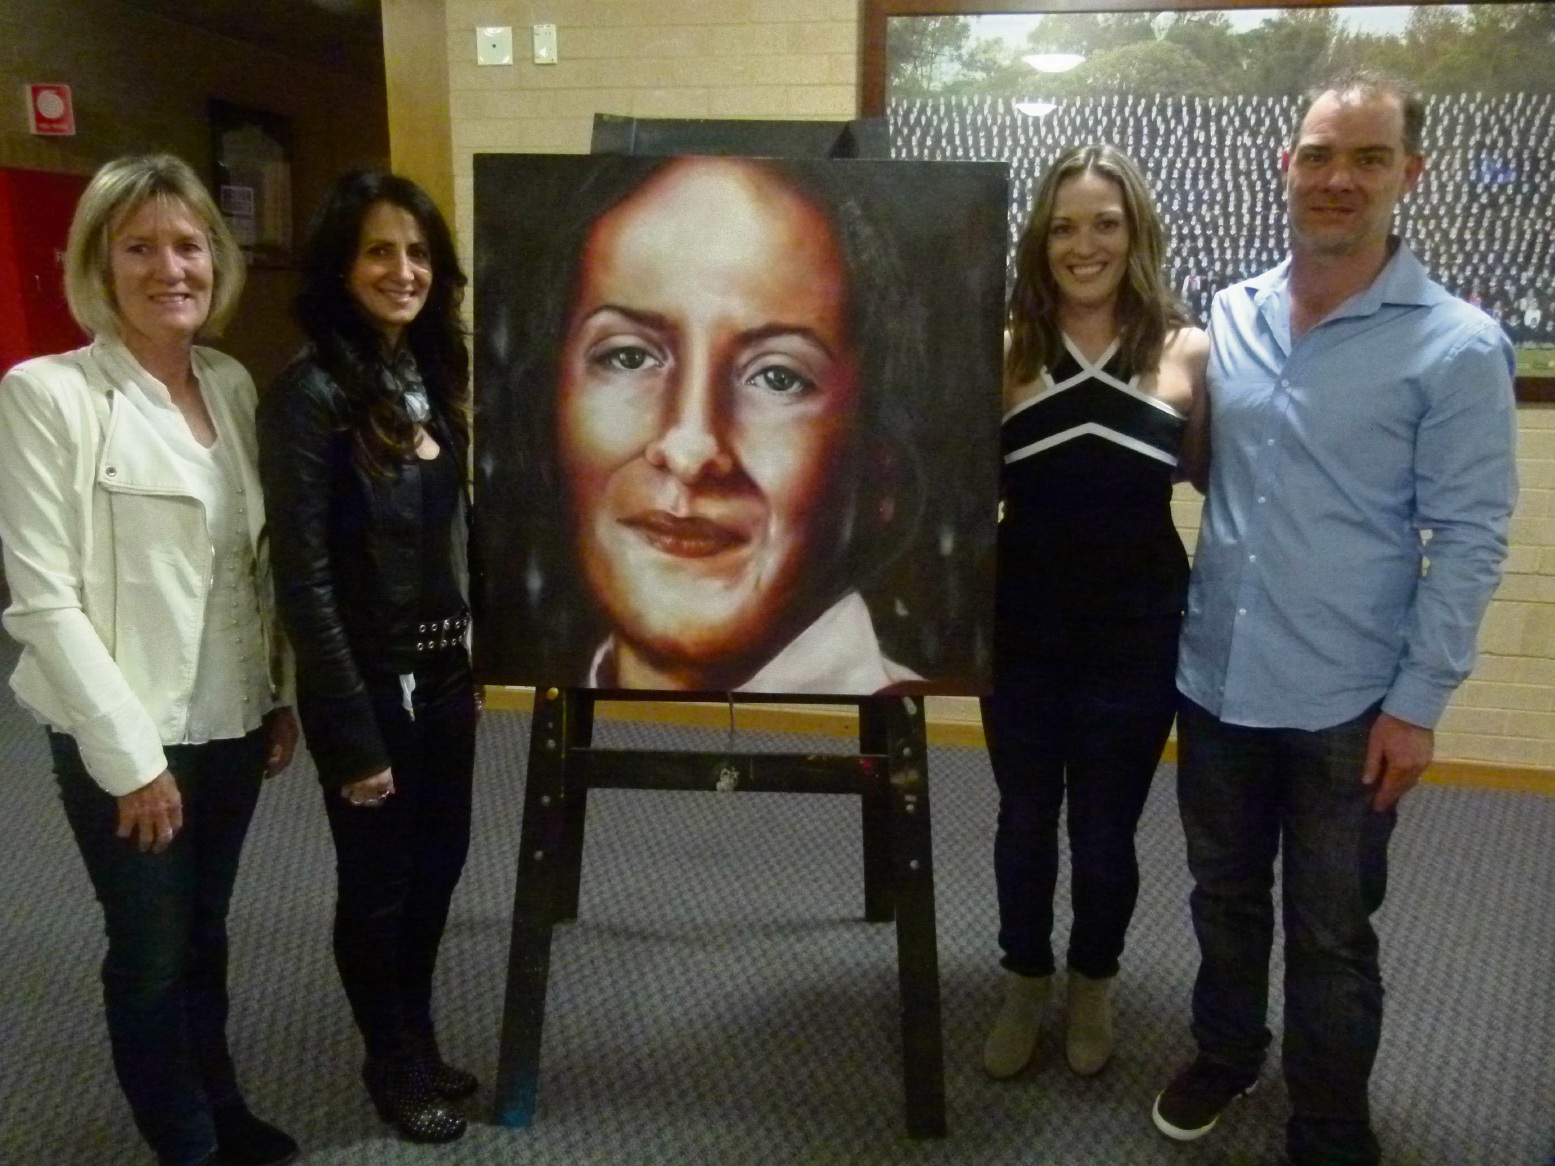 Felicity's mother Gail Park, Lisa Bowden, Felicity's sister Angela Park and Mater Dei College's Brian Morison.